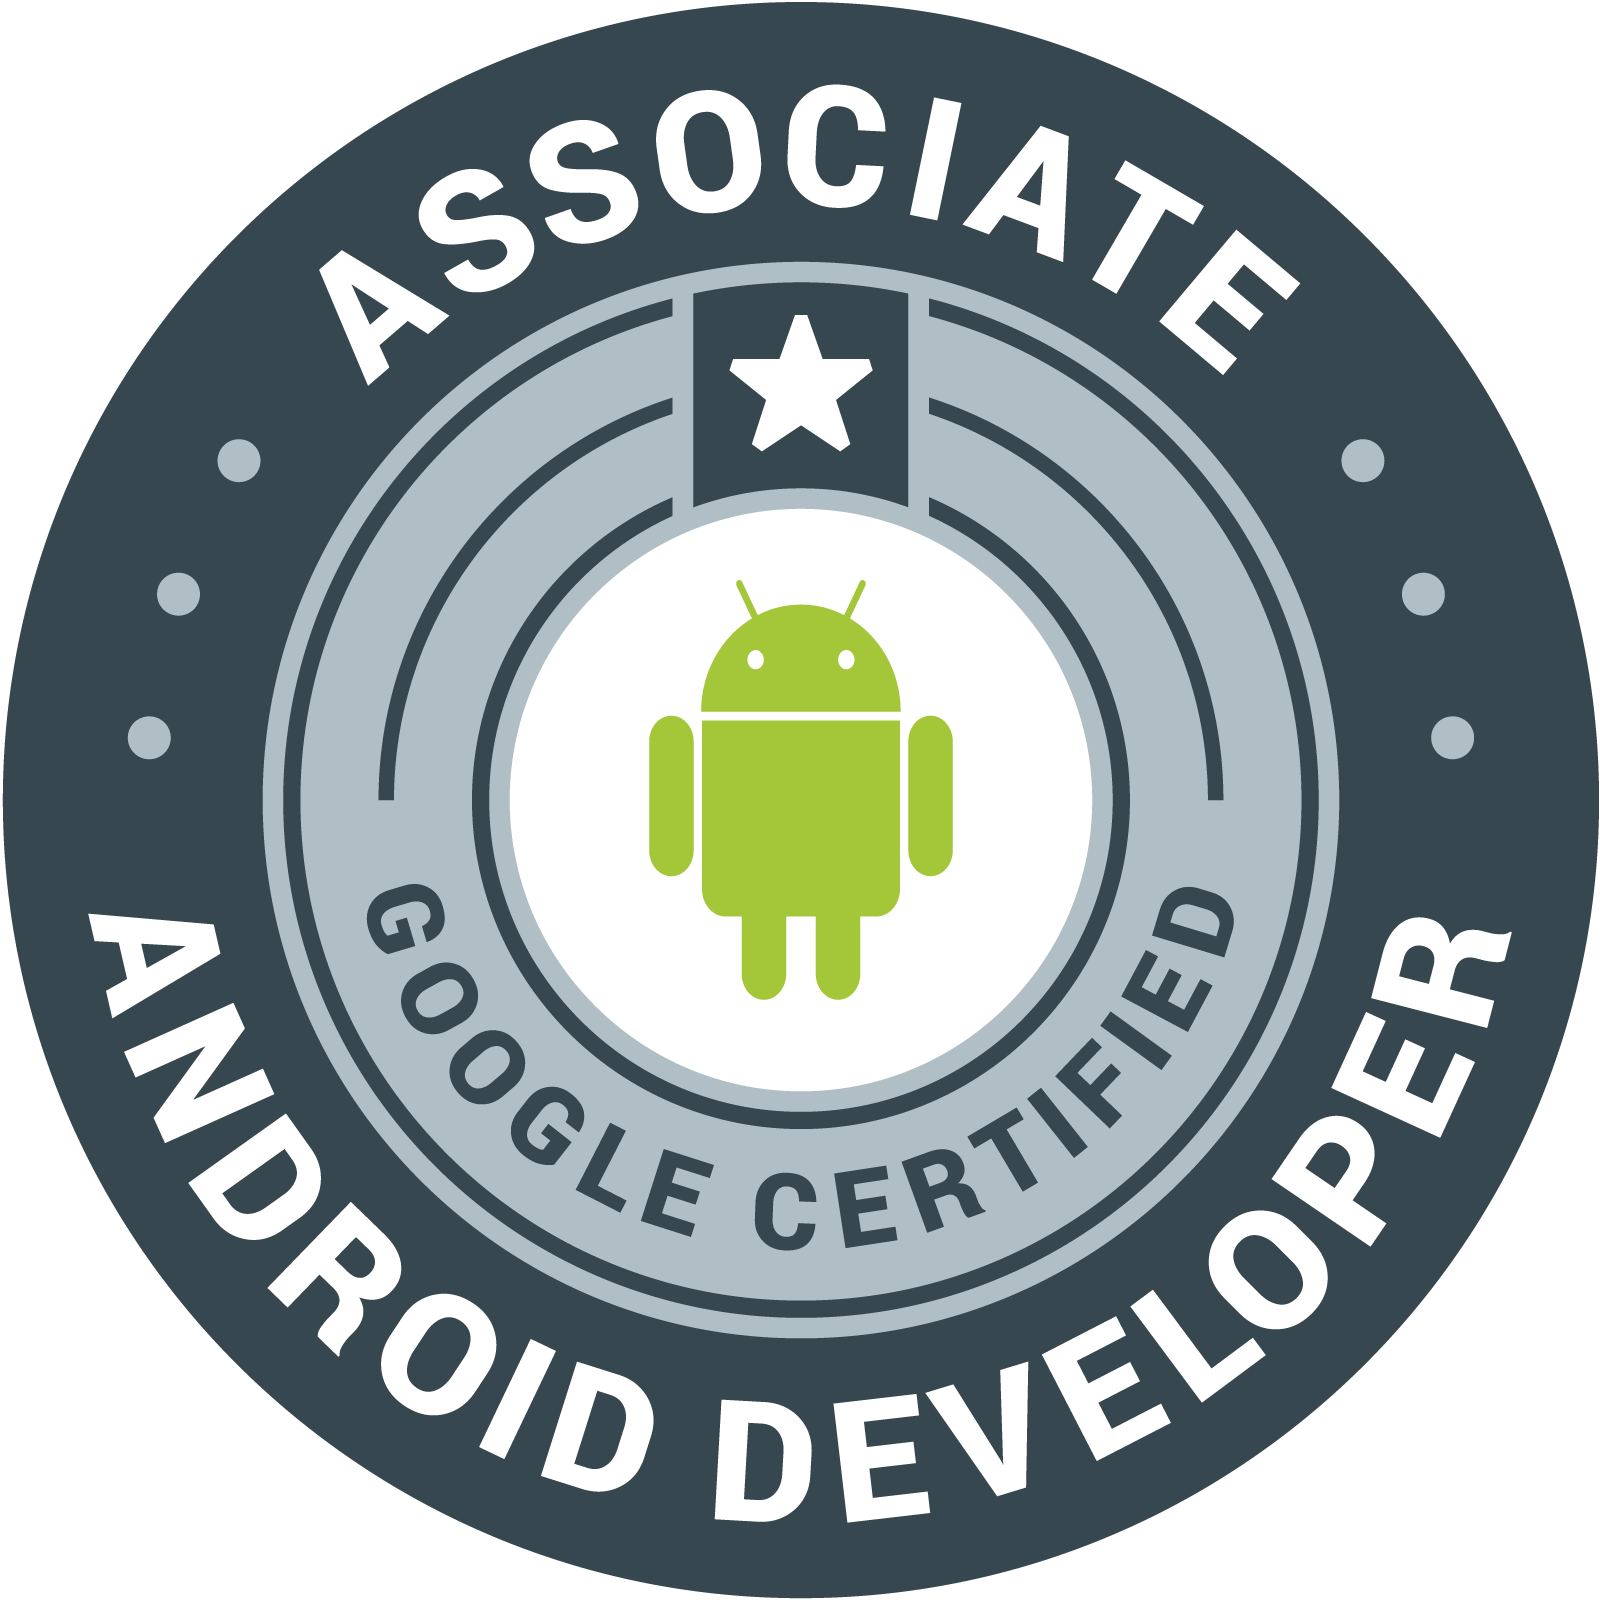 Google Certified Android Developer